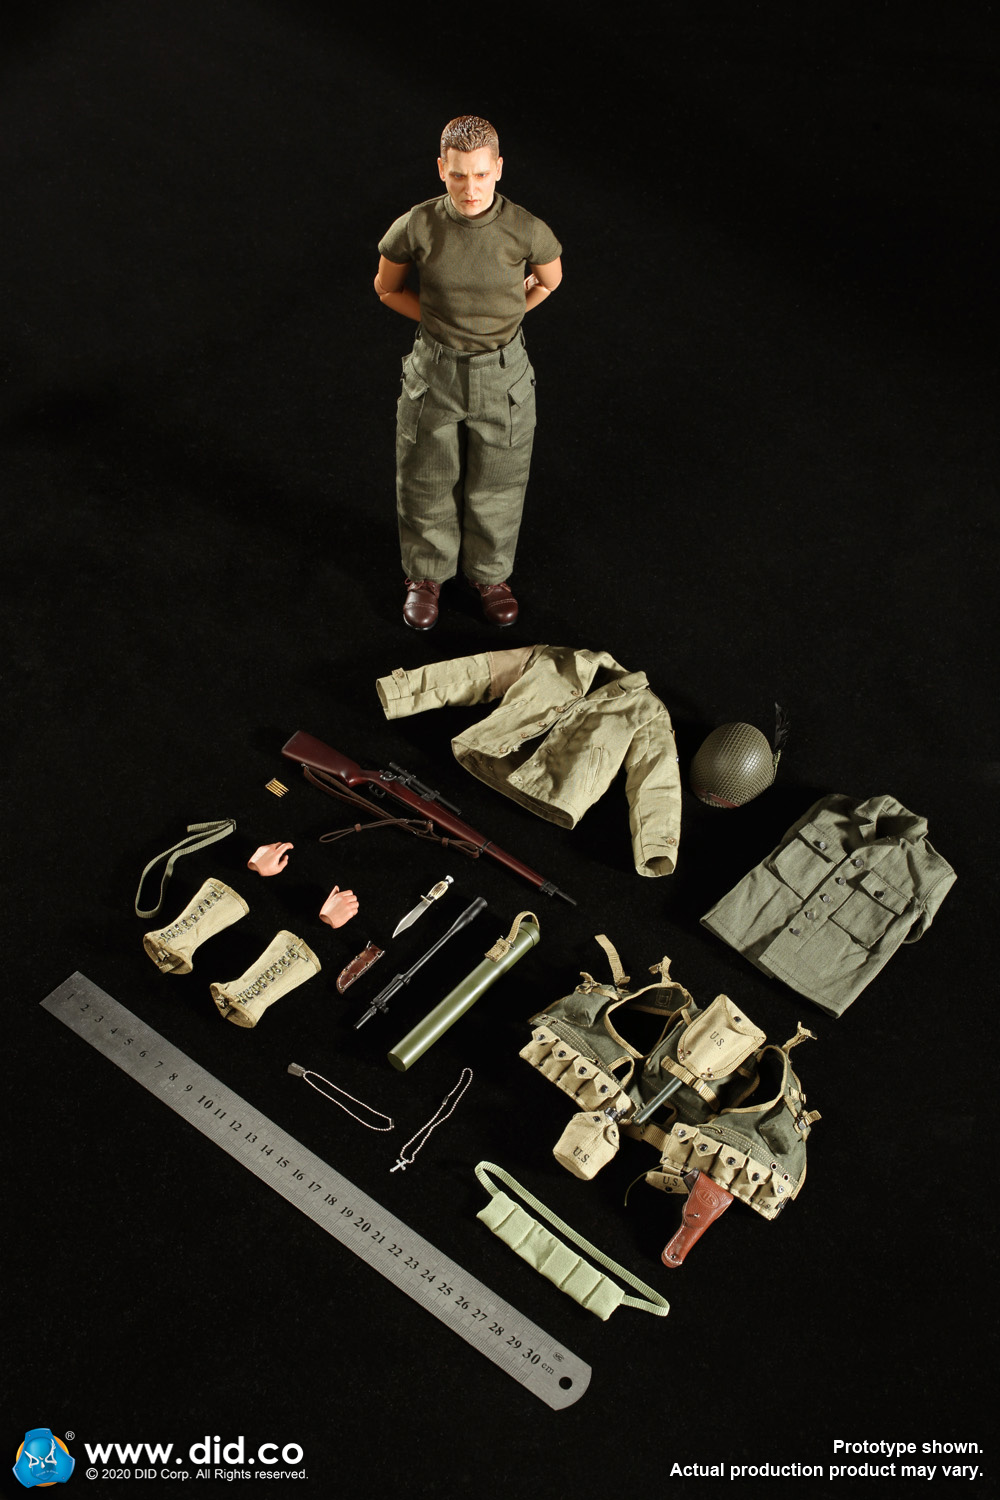 DiD - NEW PRODUCT: DiD: A80144 WWII US 2nd Ranger Battalion Series 4 Private Jackson 5711